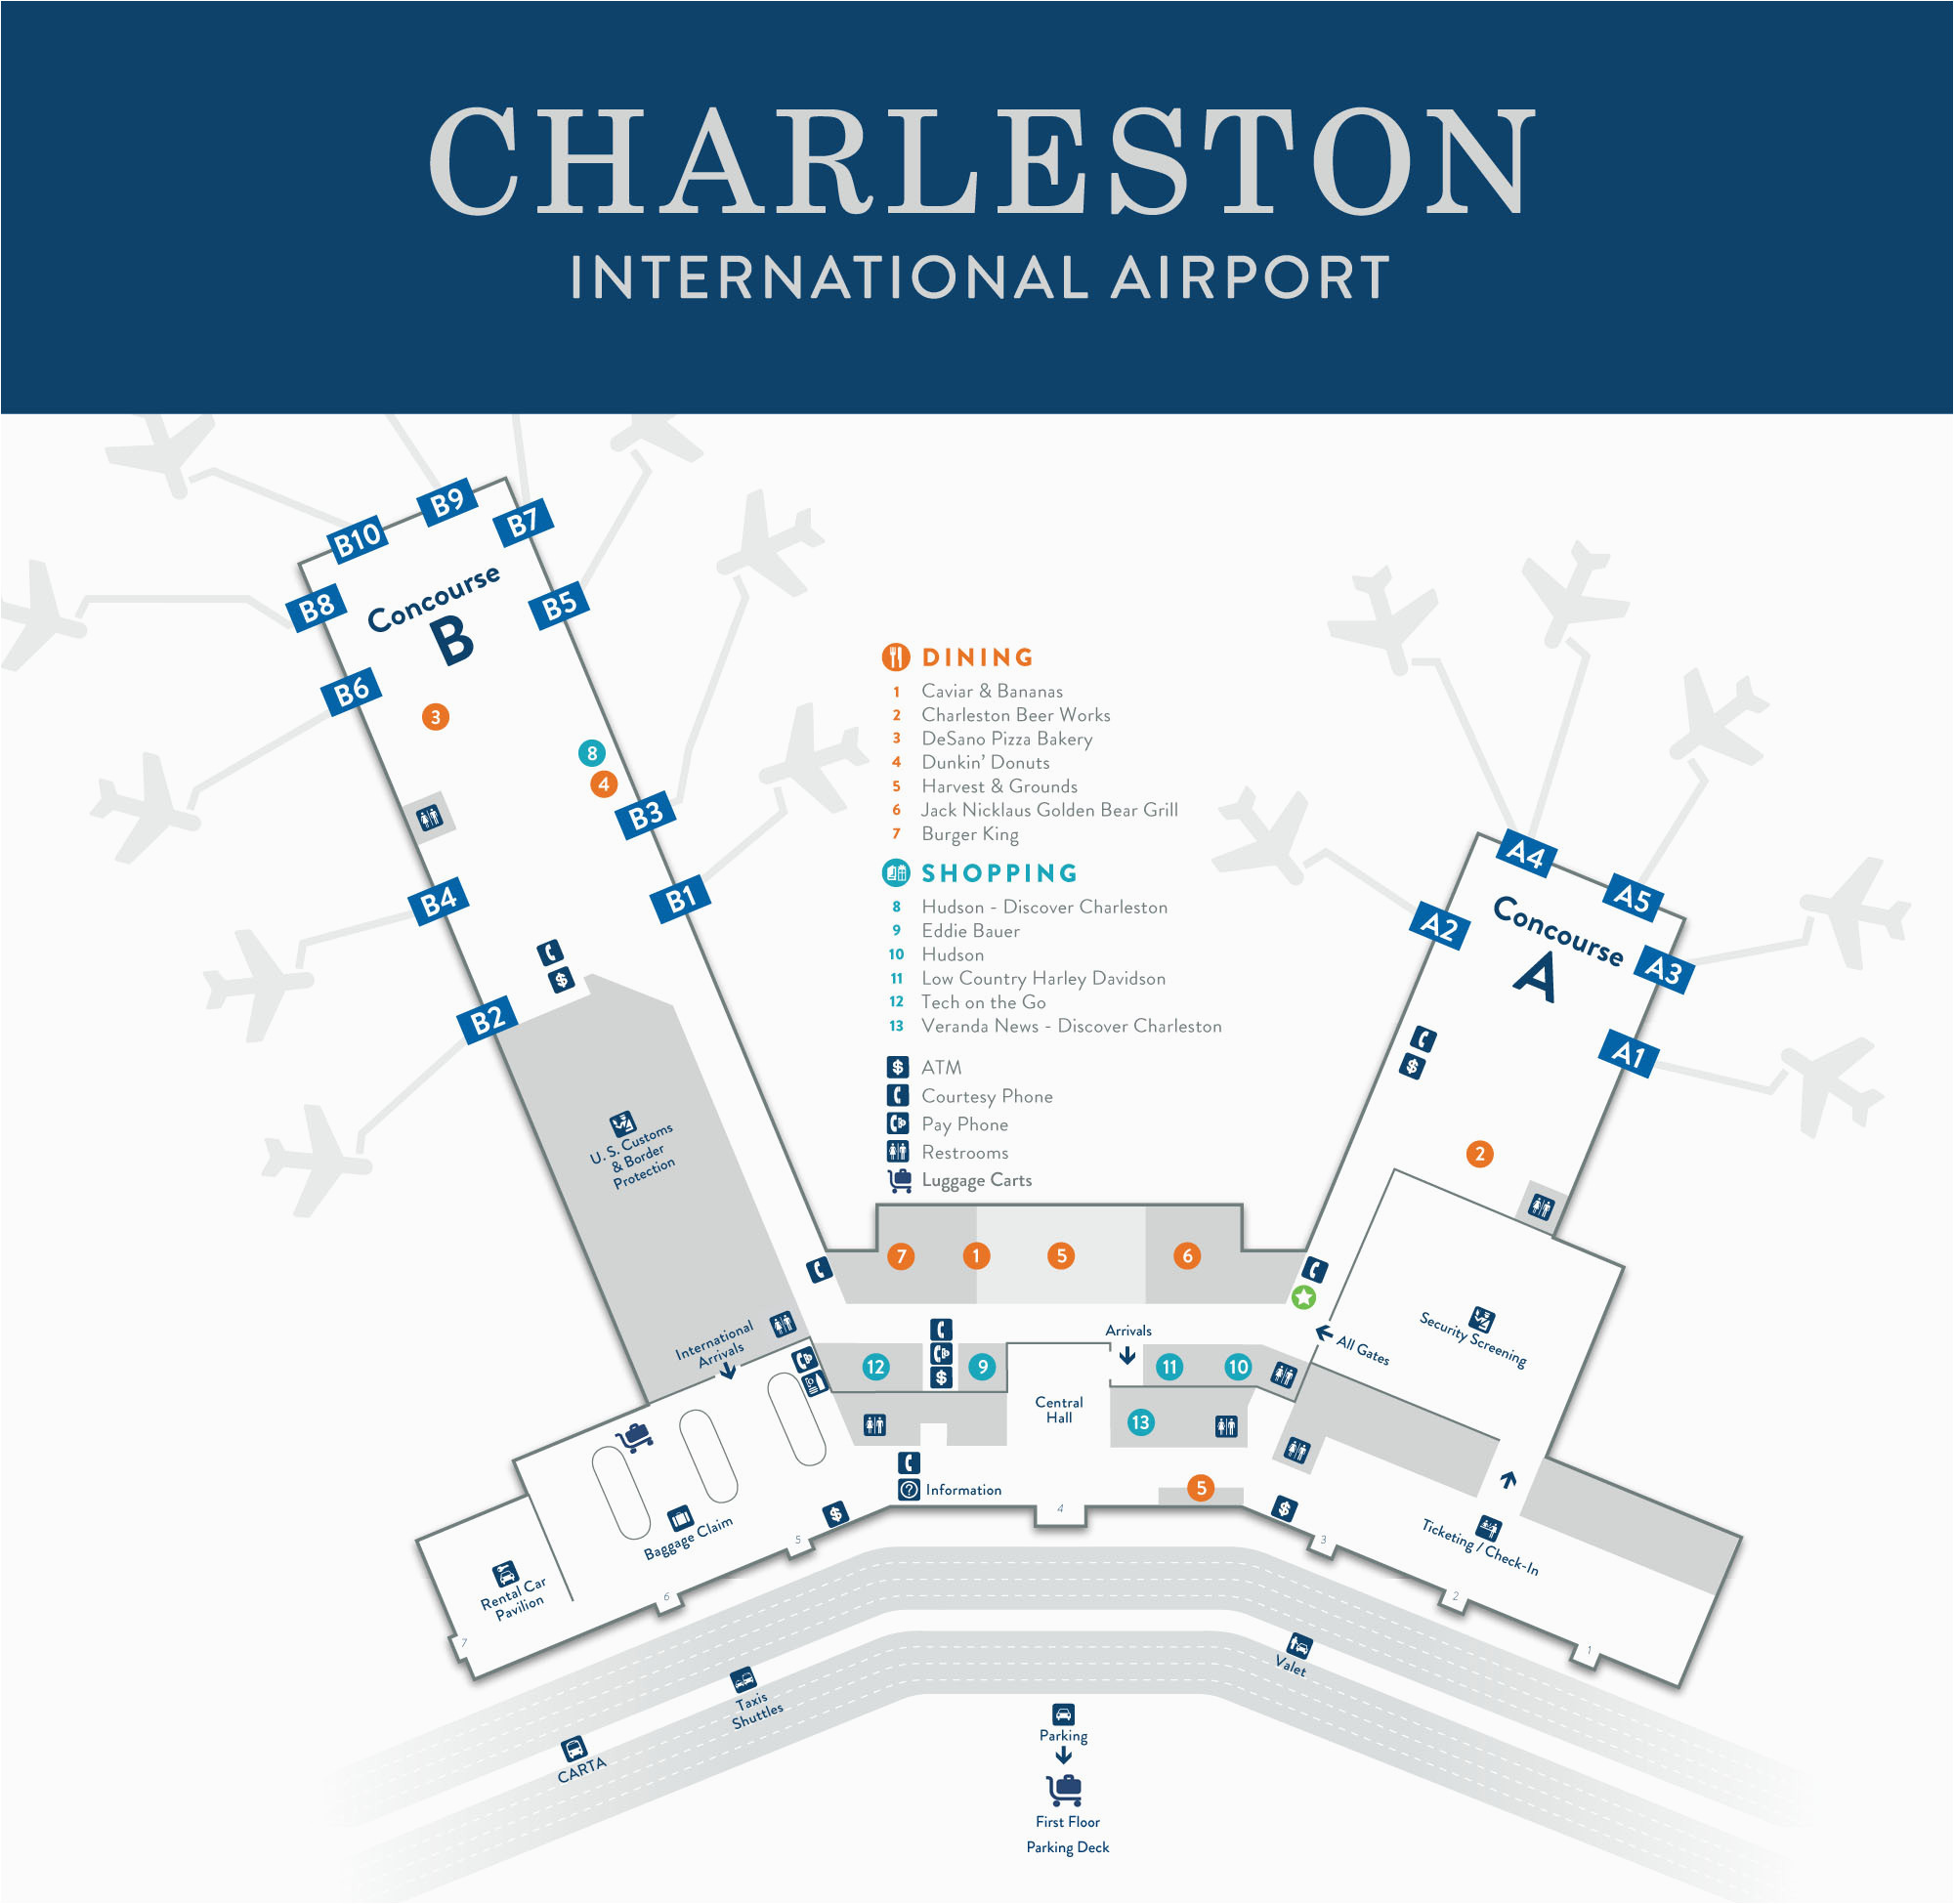 charleston international airport terminal map